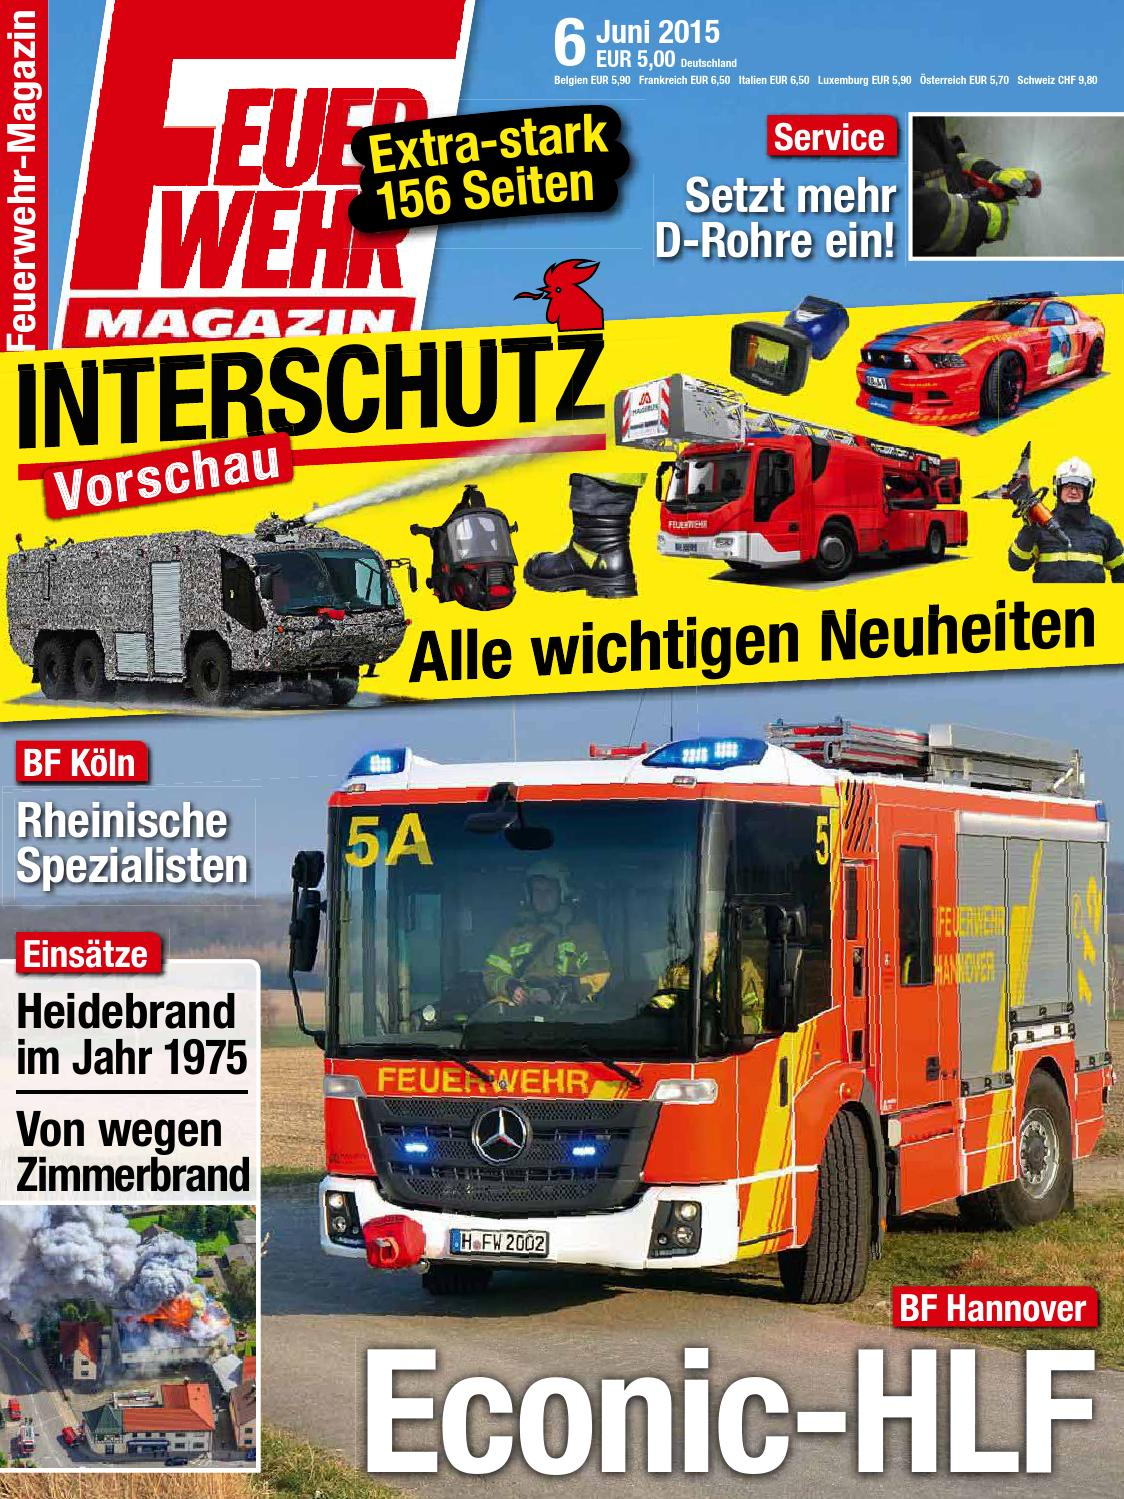 Feuerwehr magazin april 2015 by Augusto Dantas - issuu